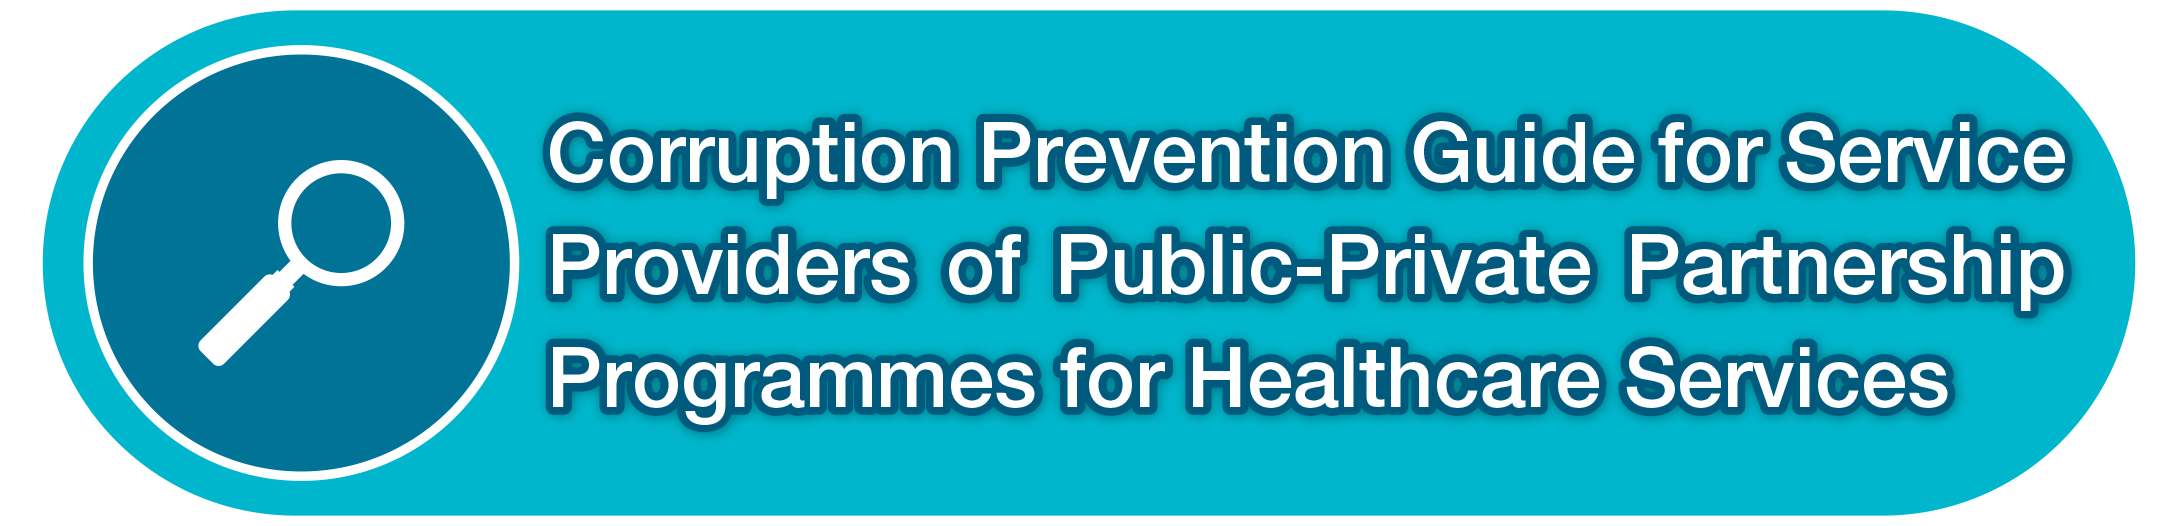 Corruption Prevention Guide for Service Providers of Public-Private Partnership Programmes for Healthcare Services